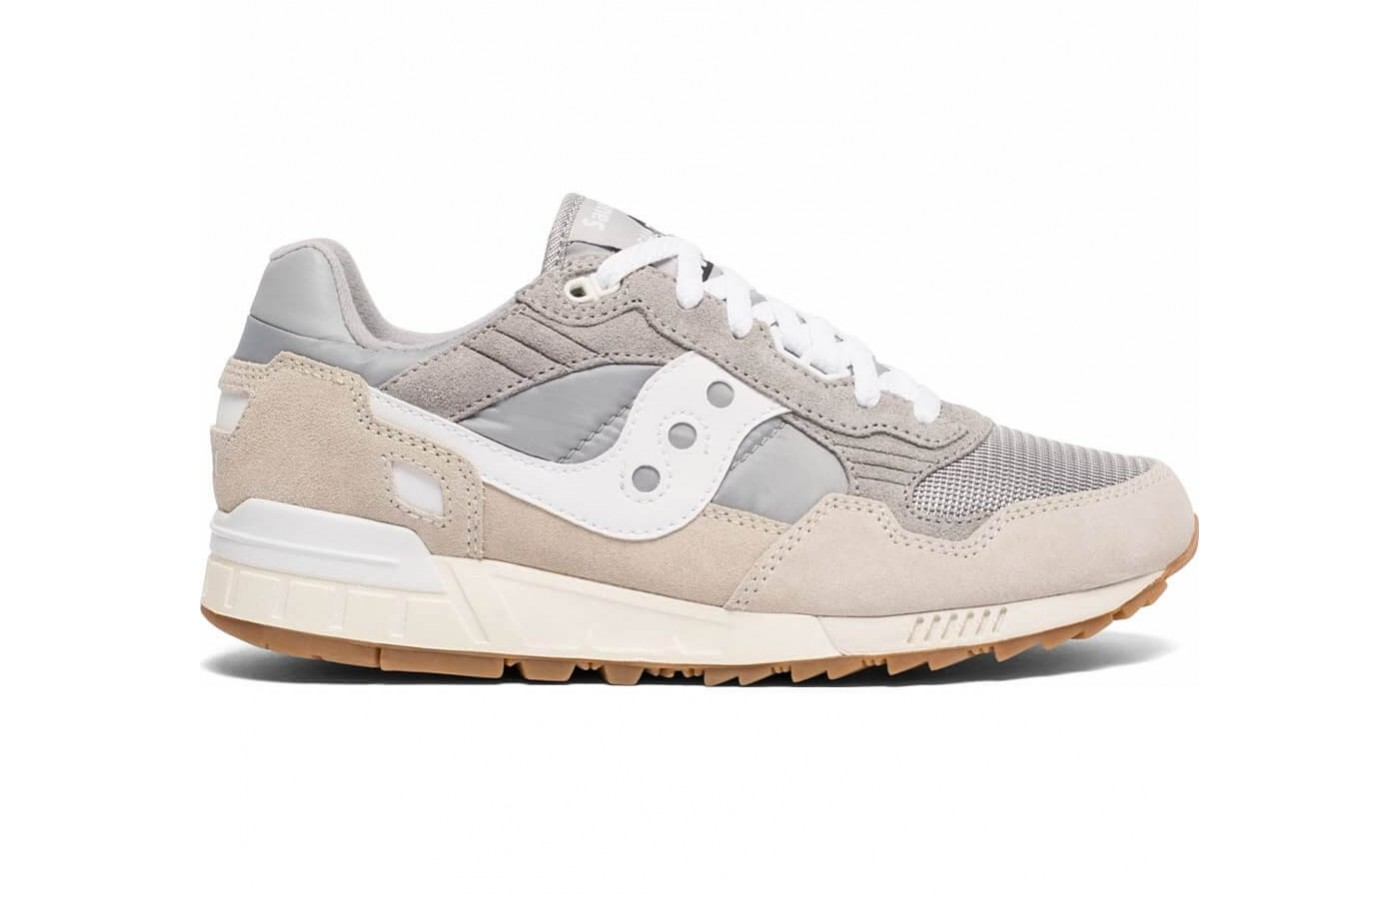 The Saucony Shadow 5000 offers suede and mesh uppers for breathability and durability.